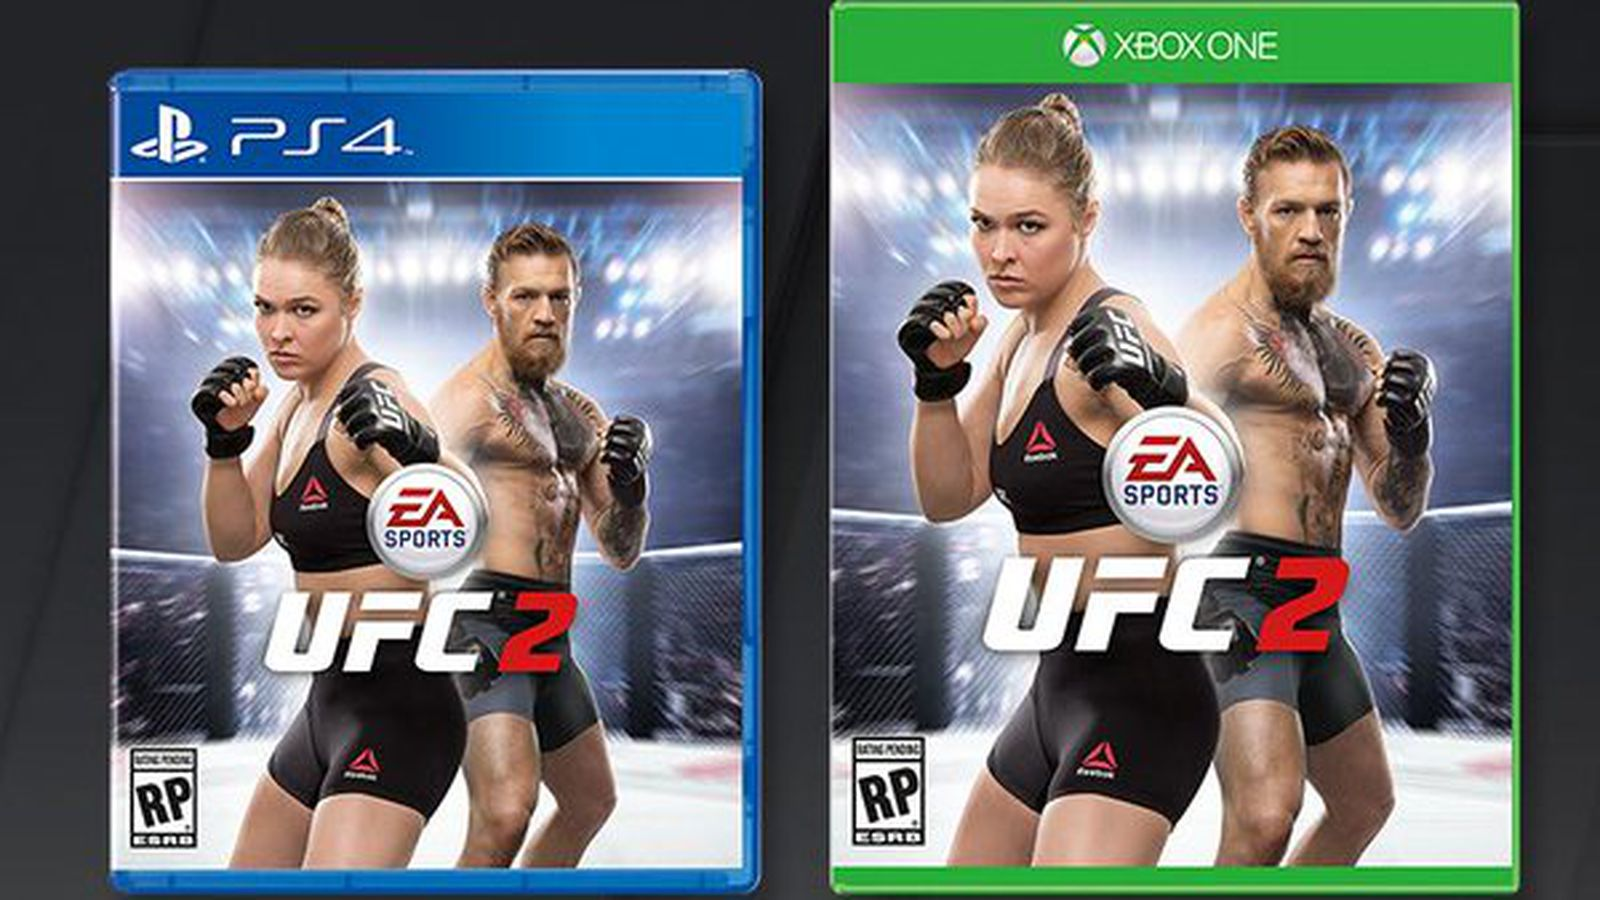 EA Sports releases cover of UFC 2 with McGregor